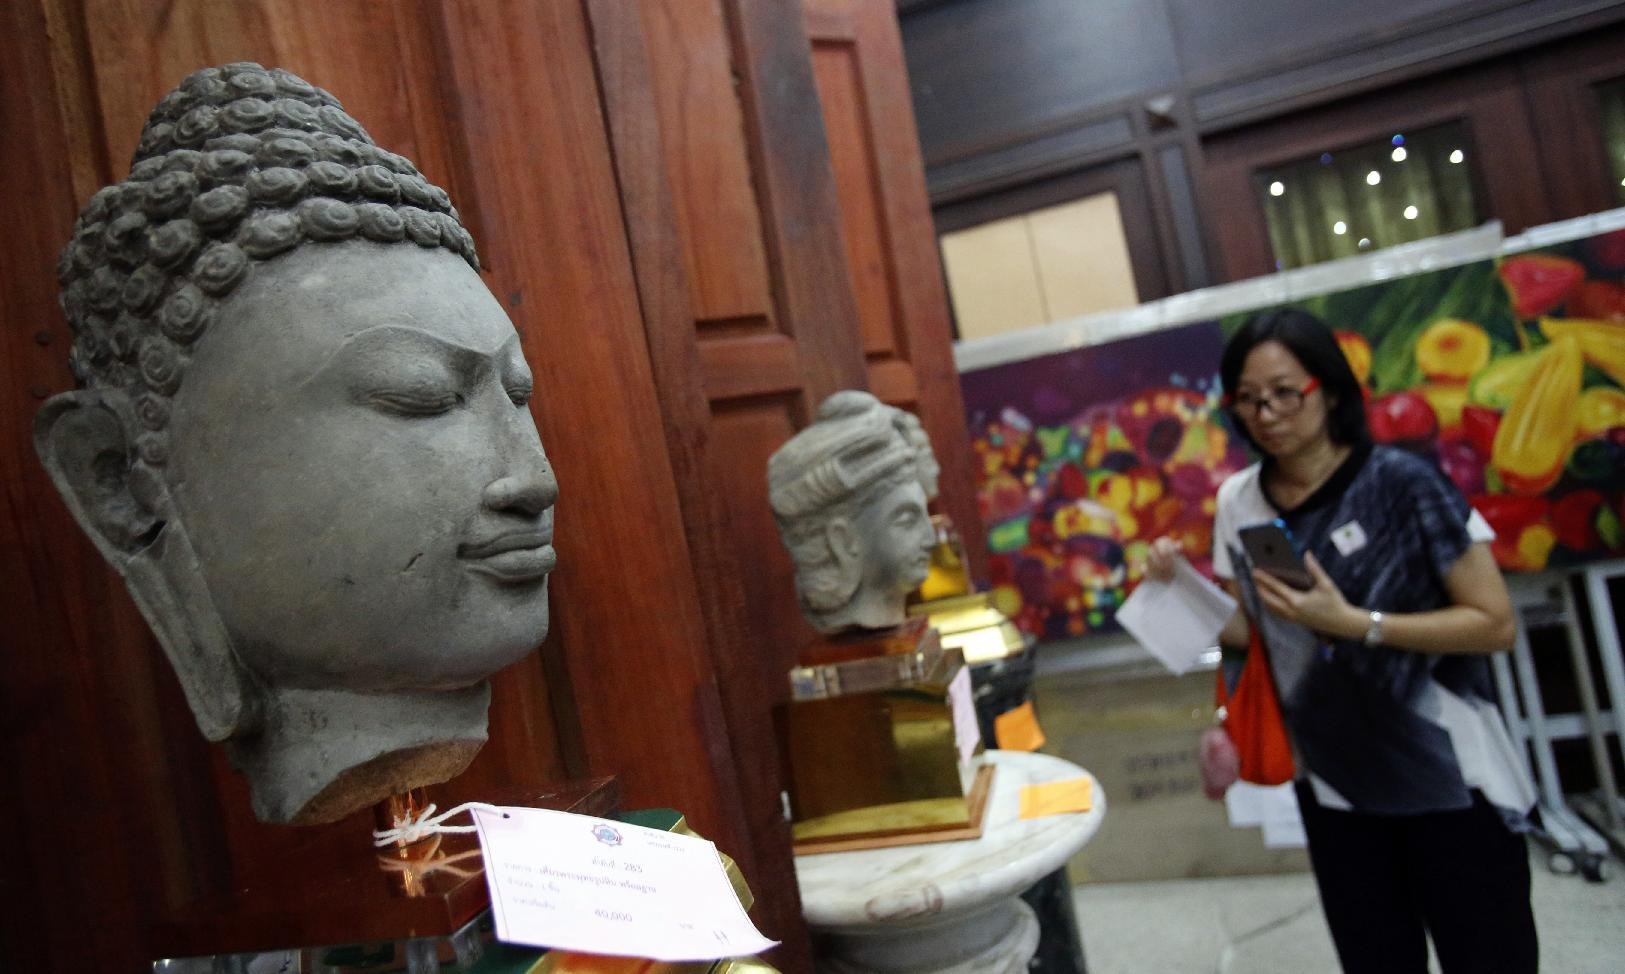 Art, fine wine: Thai auction puts police corruption on view